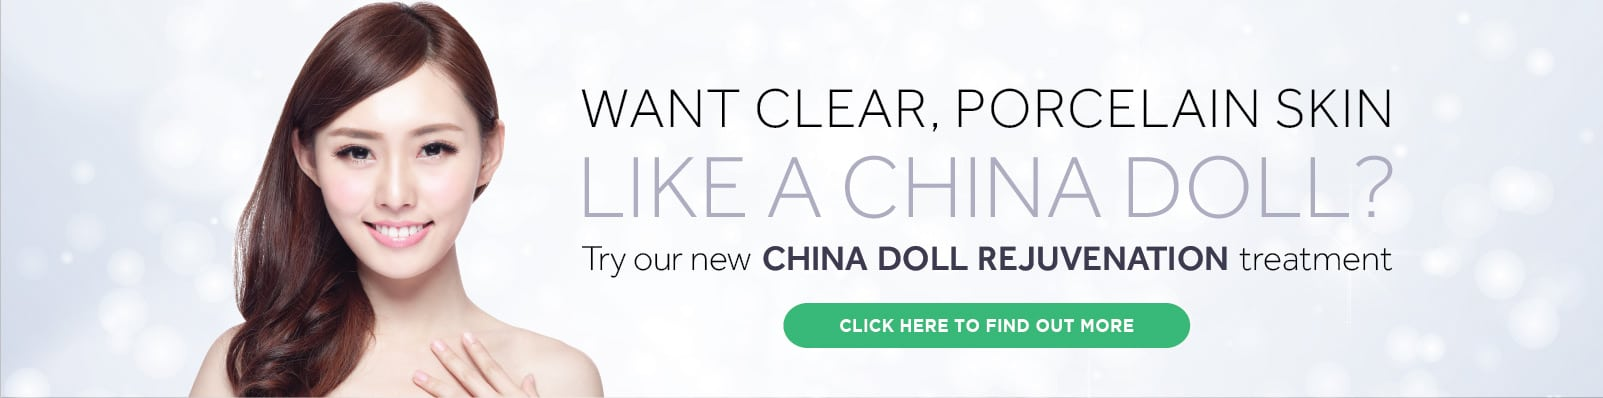 china doll rejuvenation